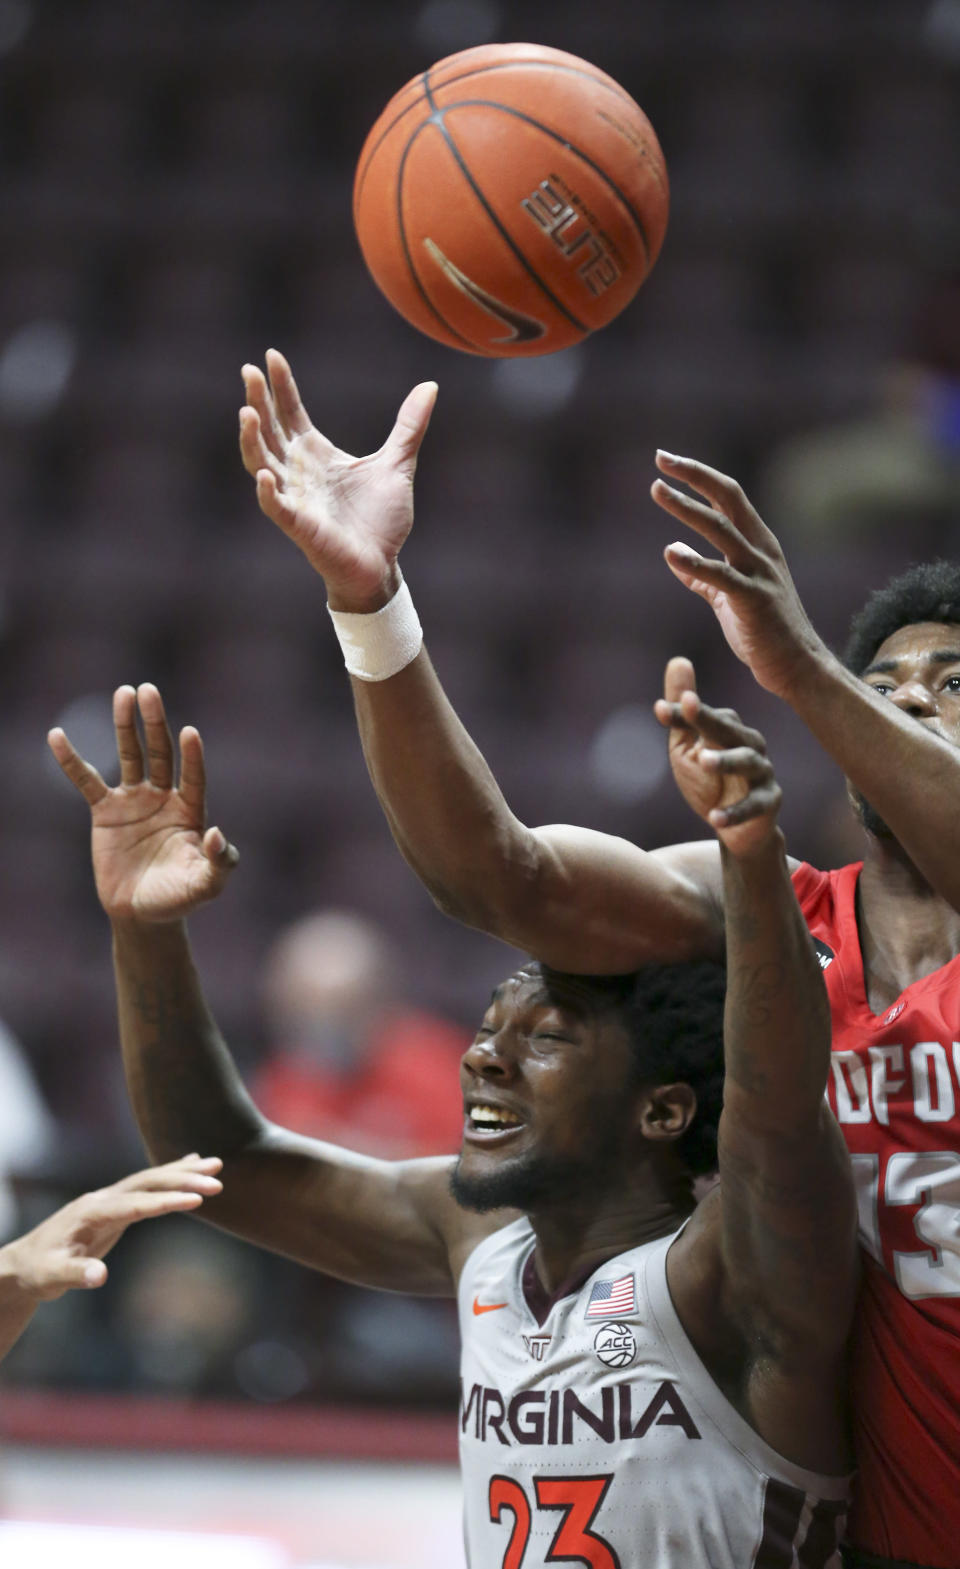 Virginia Tech's Tyrece Radford (22) and Radford Shaquan Jules (13) reach for a rebound in the second half of an NCAA college basketball game, Wednesday Nov. 25, 2020, in Blacksburg Va. (Matt Gentry/The Roanoke Times via AP)